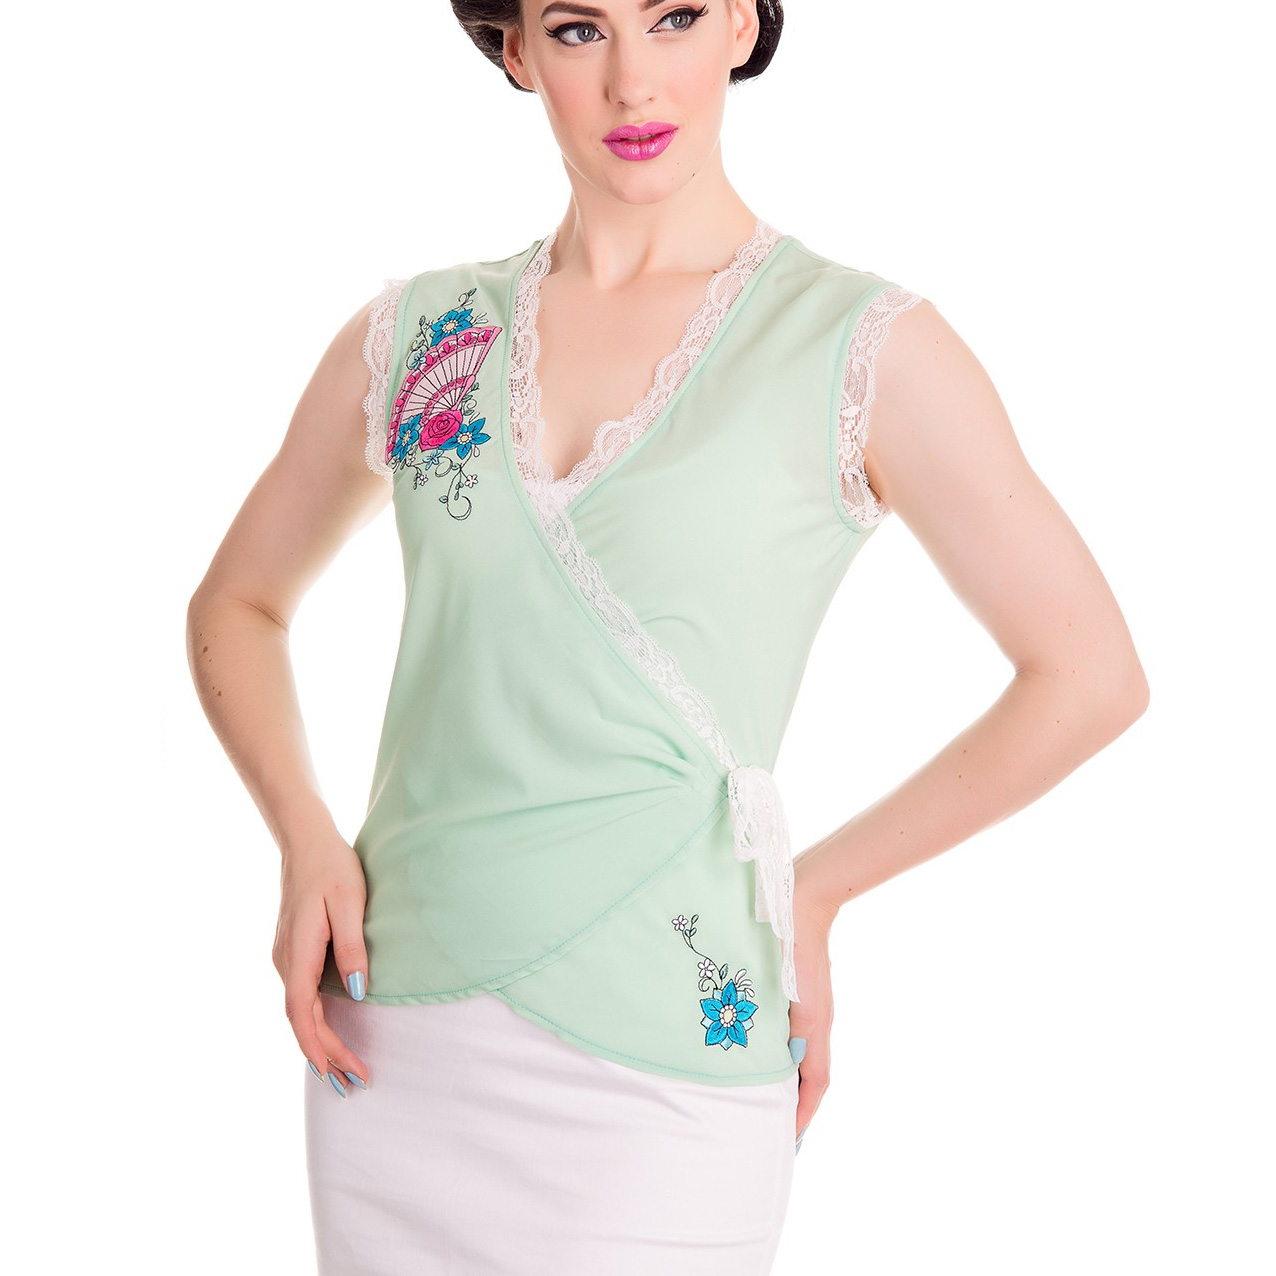 Hell-Bunny-Shirt-40s-50s-Top-Chiffon-Blouse-KYOTO-Wrap-Lace-Green-All-Sizes thumbnail 3